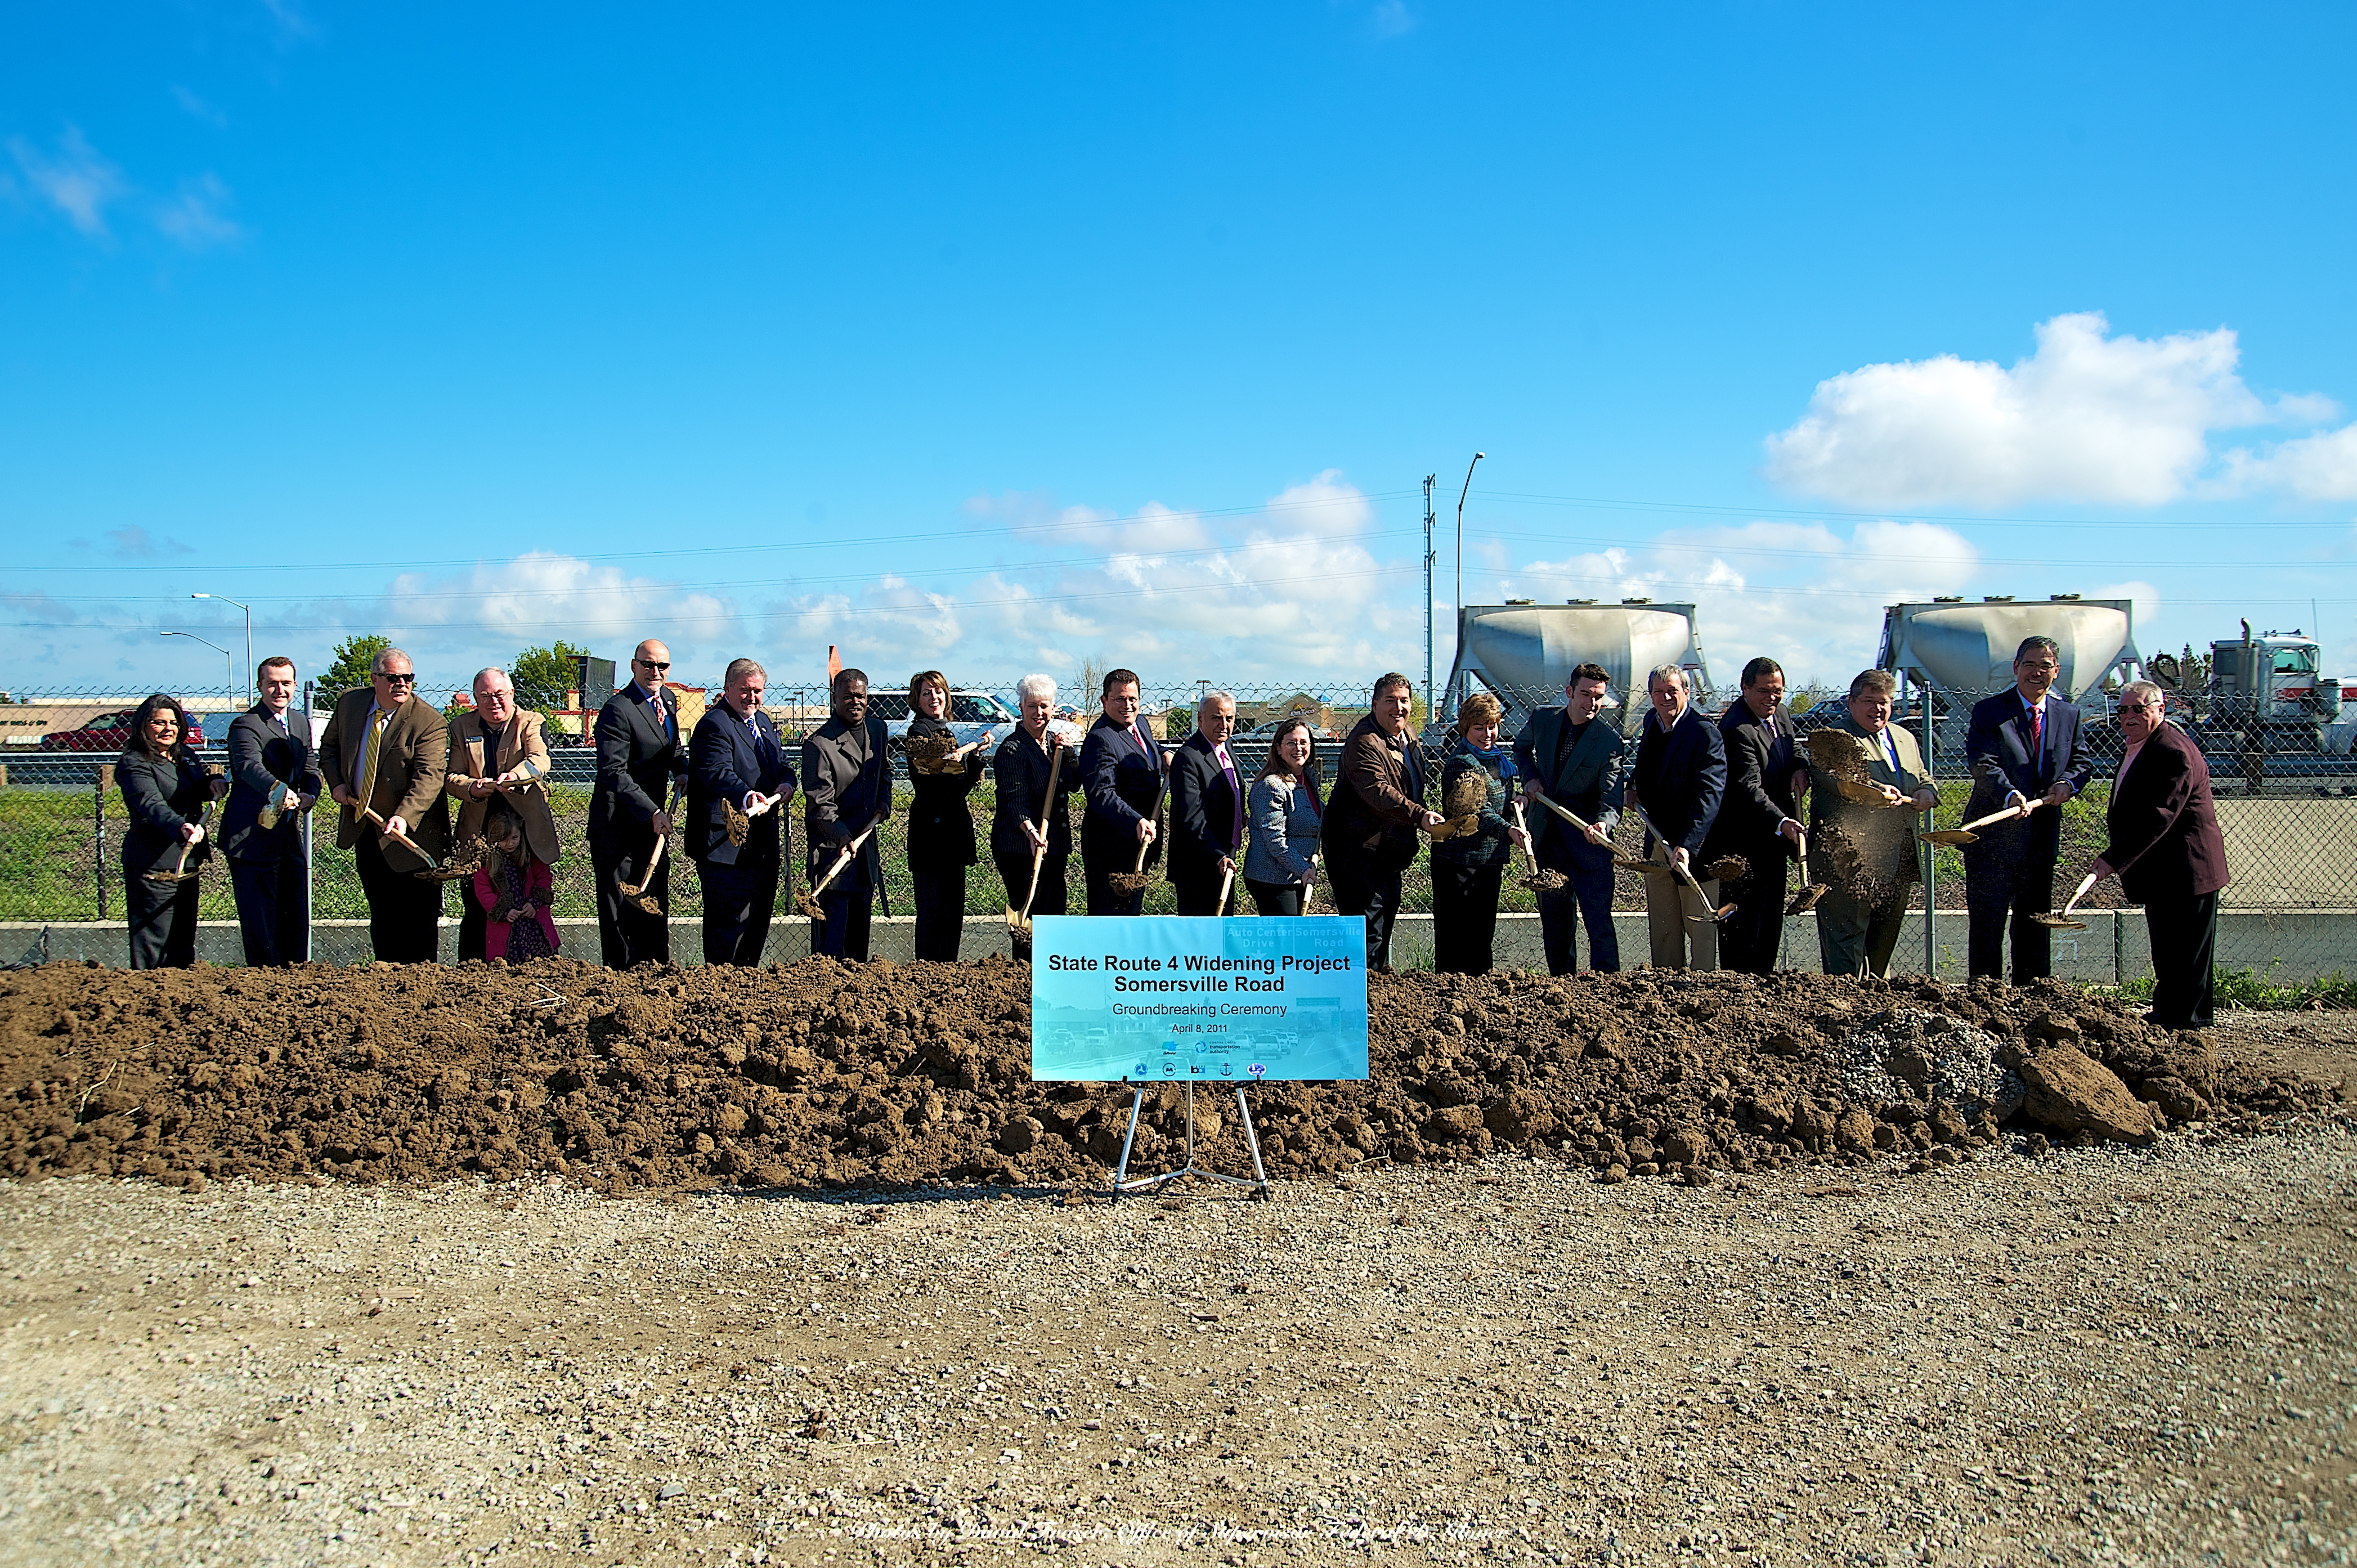 Ground Breaking for Highway 4 Widening